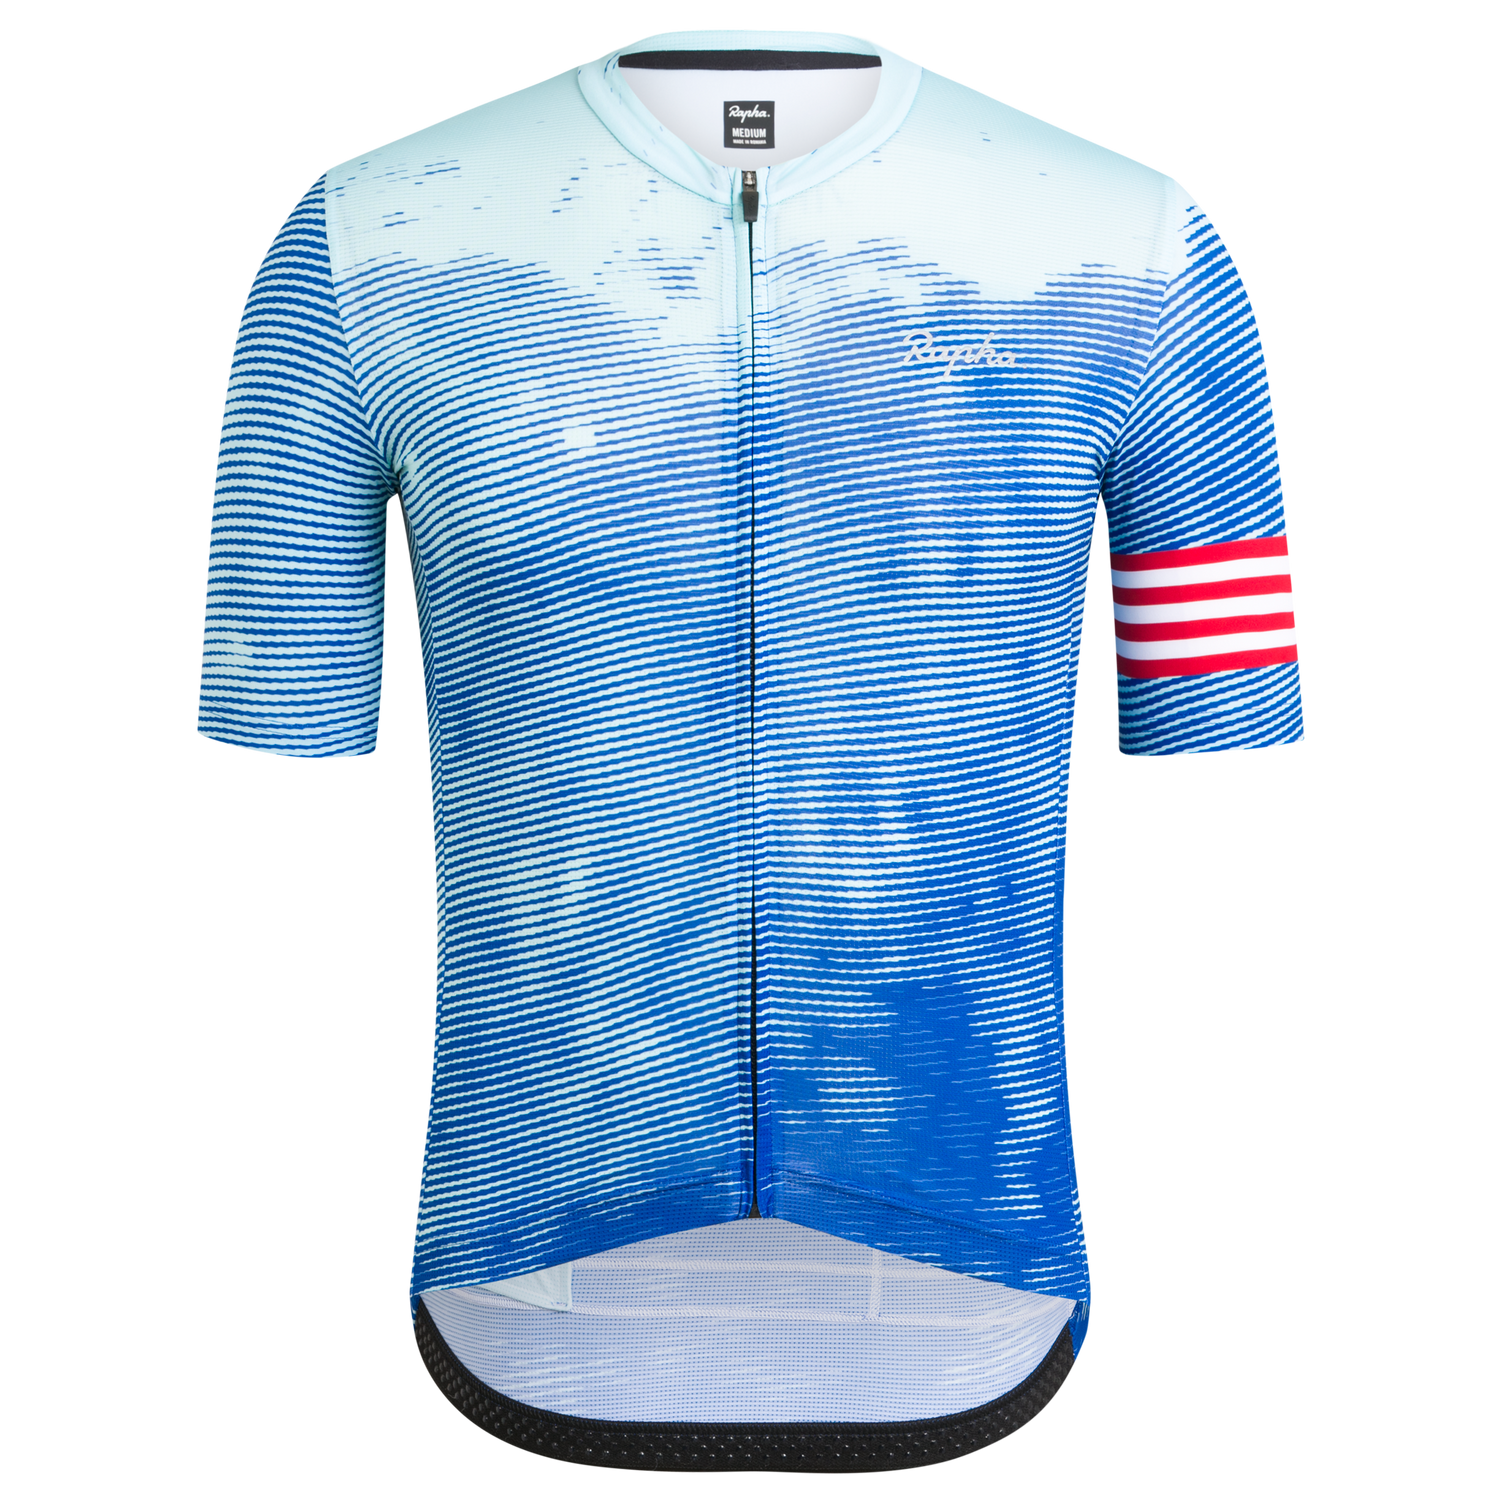 Rapha Limited Edition Country Jersey Usa Cycling Jersey Design